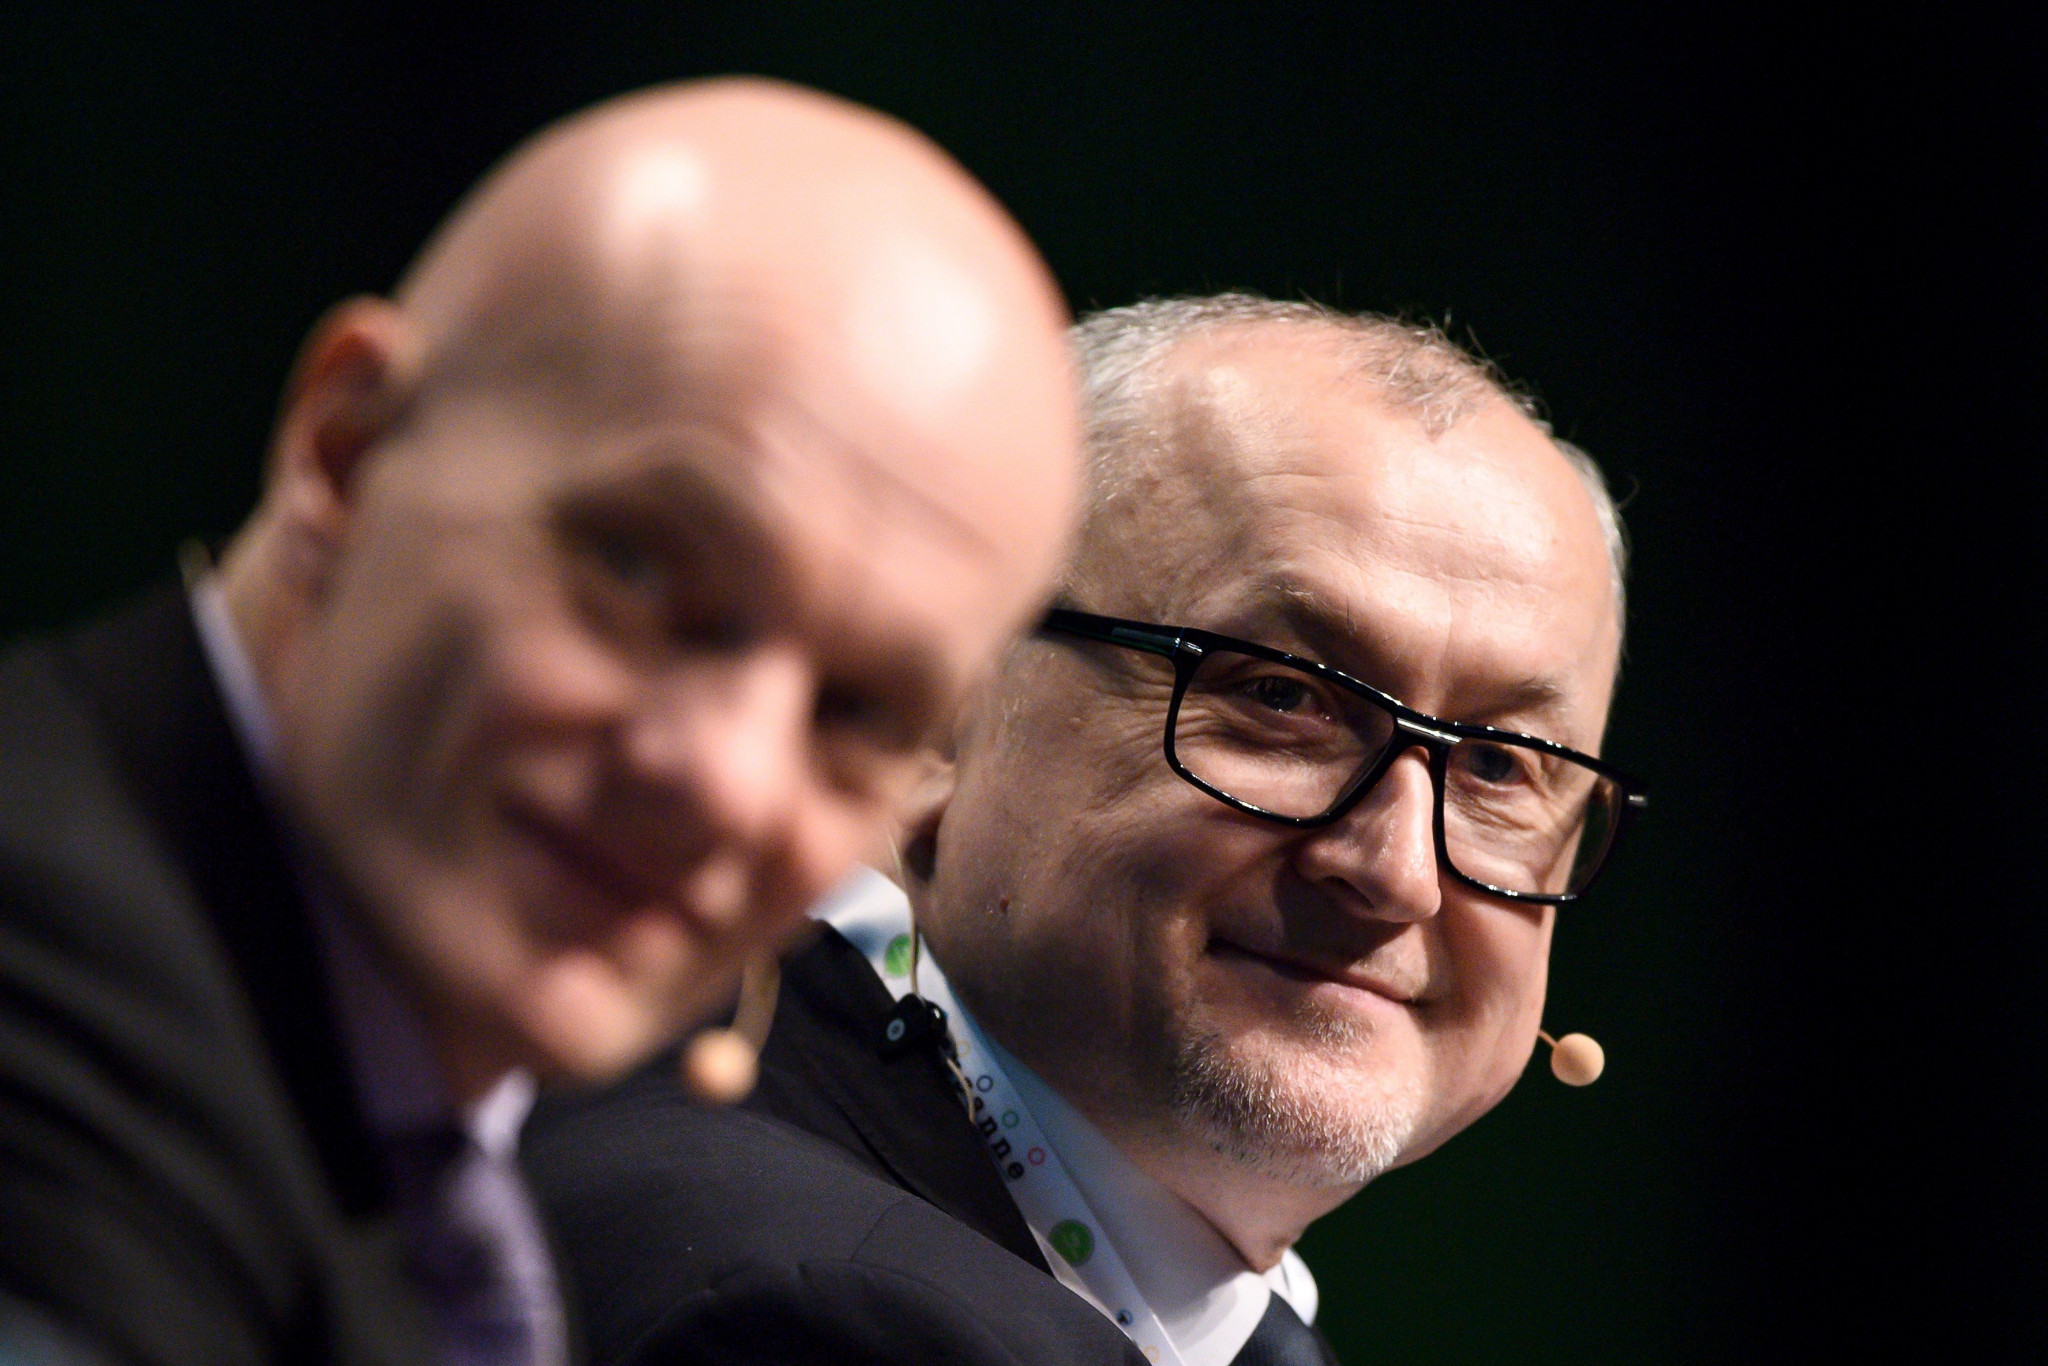 Günter Younger, left, alongside RUSADA director general Yury Ganus during the WADA Symposium in Lausanne ©Getty Images